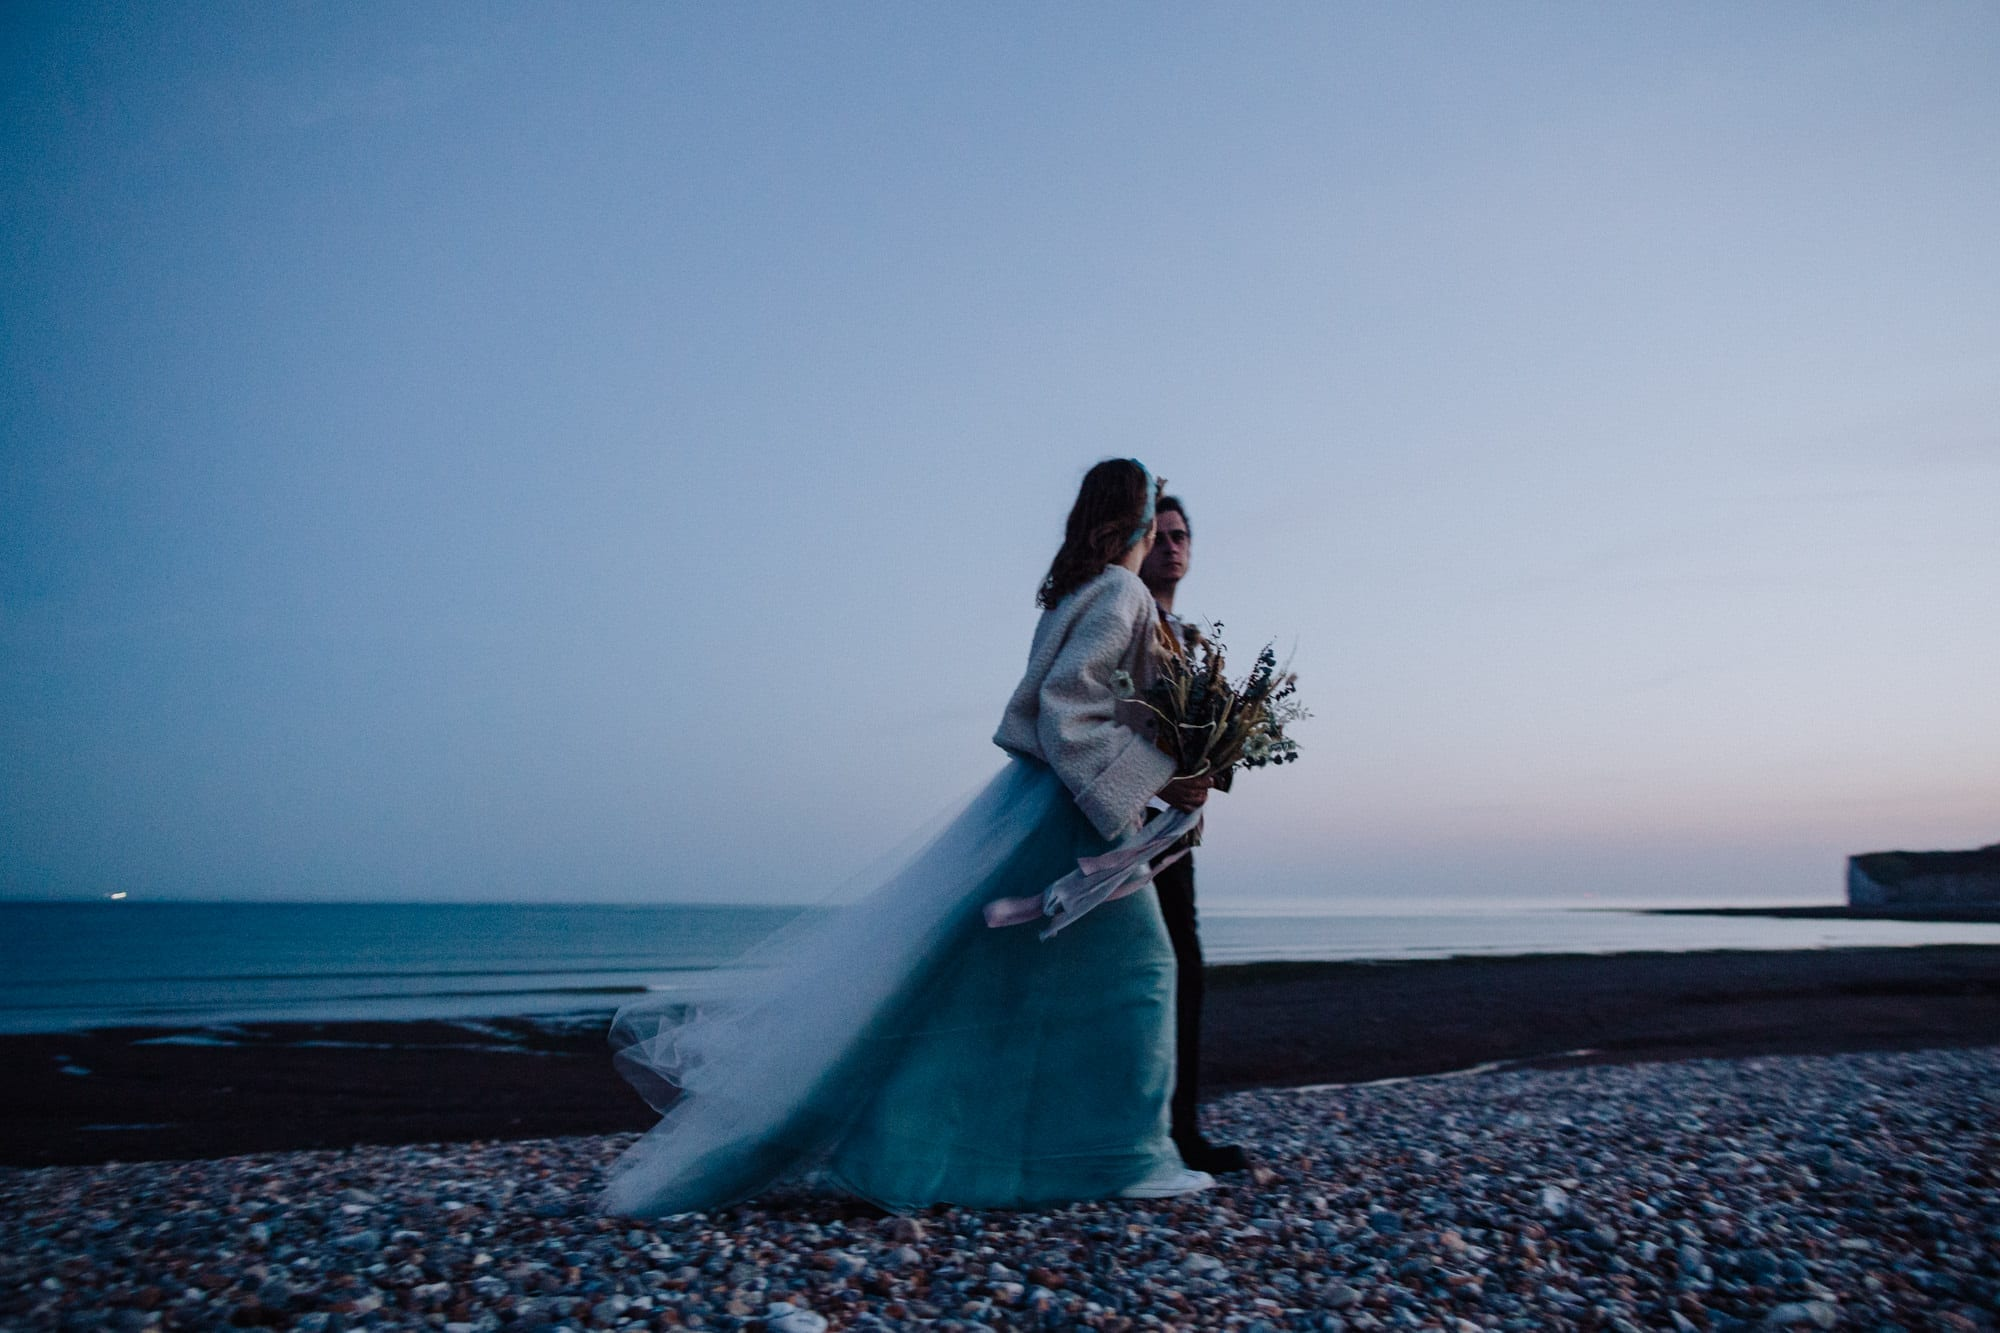 Wedding photo at dusk by the sea